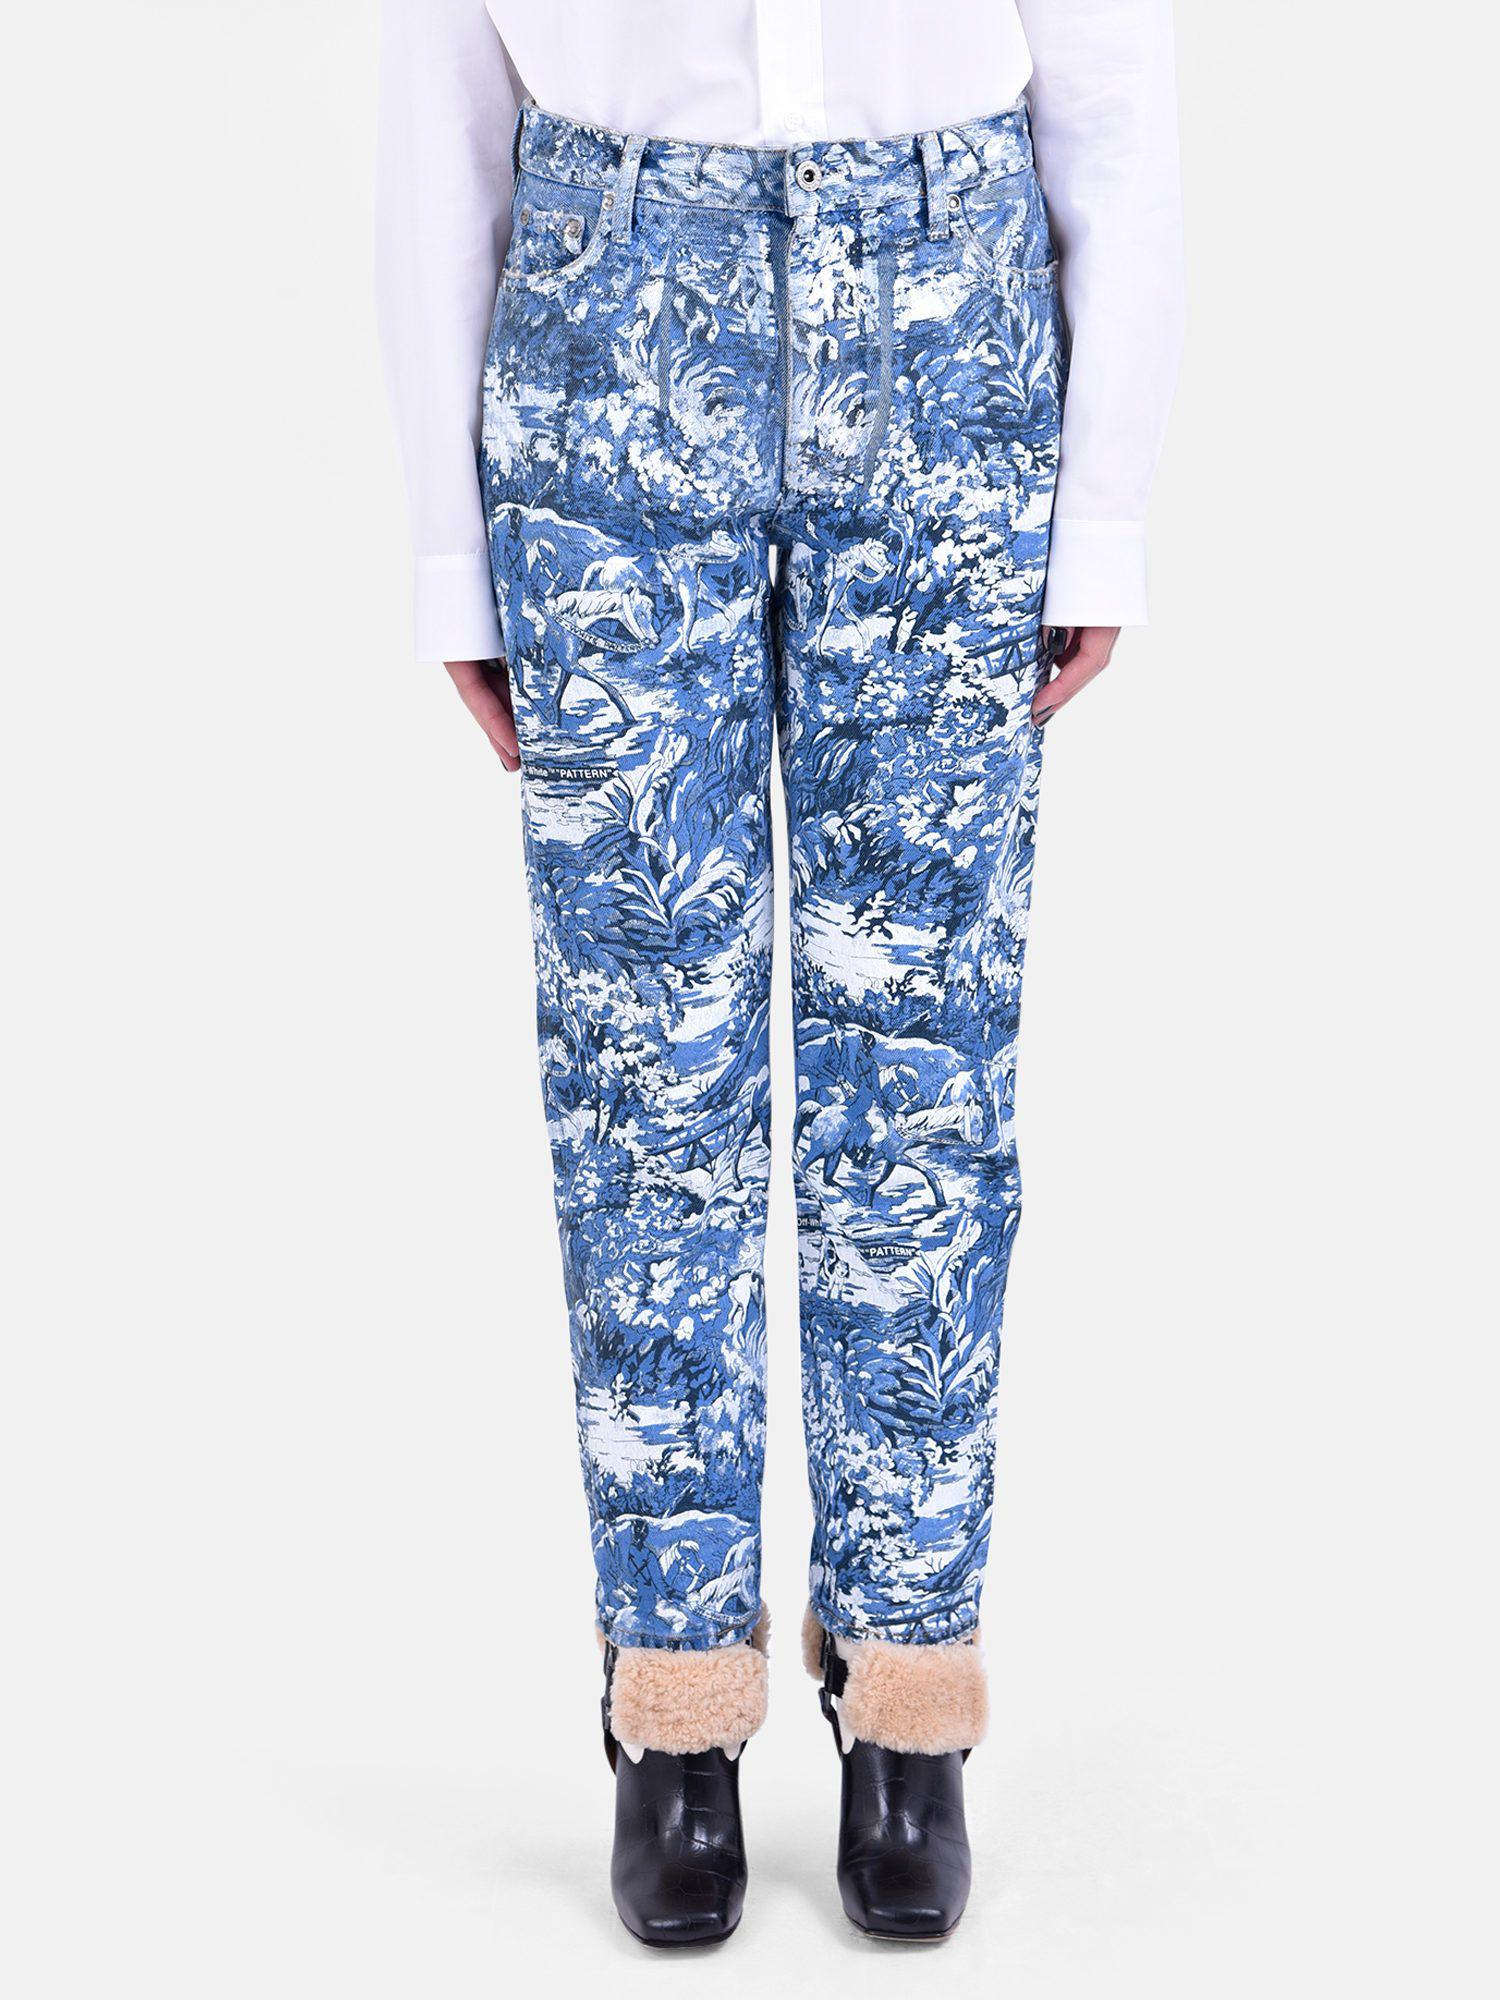 72c6c47833d8 Lyst - Off-White c o Virgil Abloh Printed Denim Jeans in Blue - Save 54%